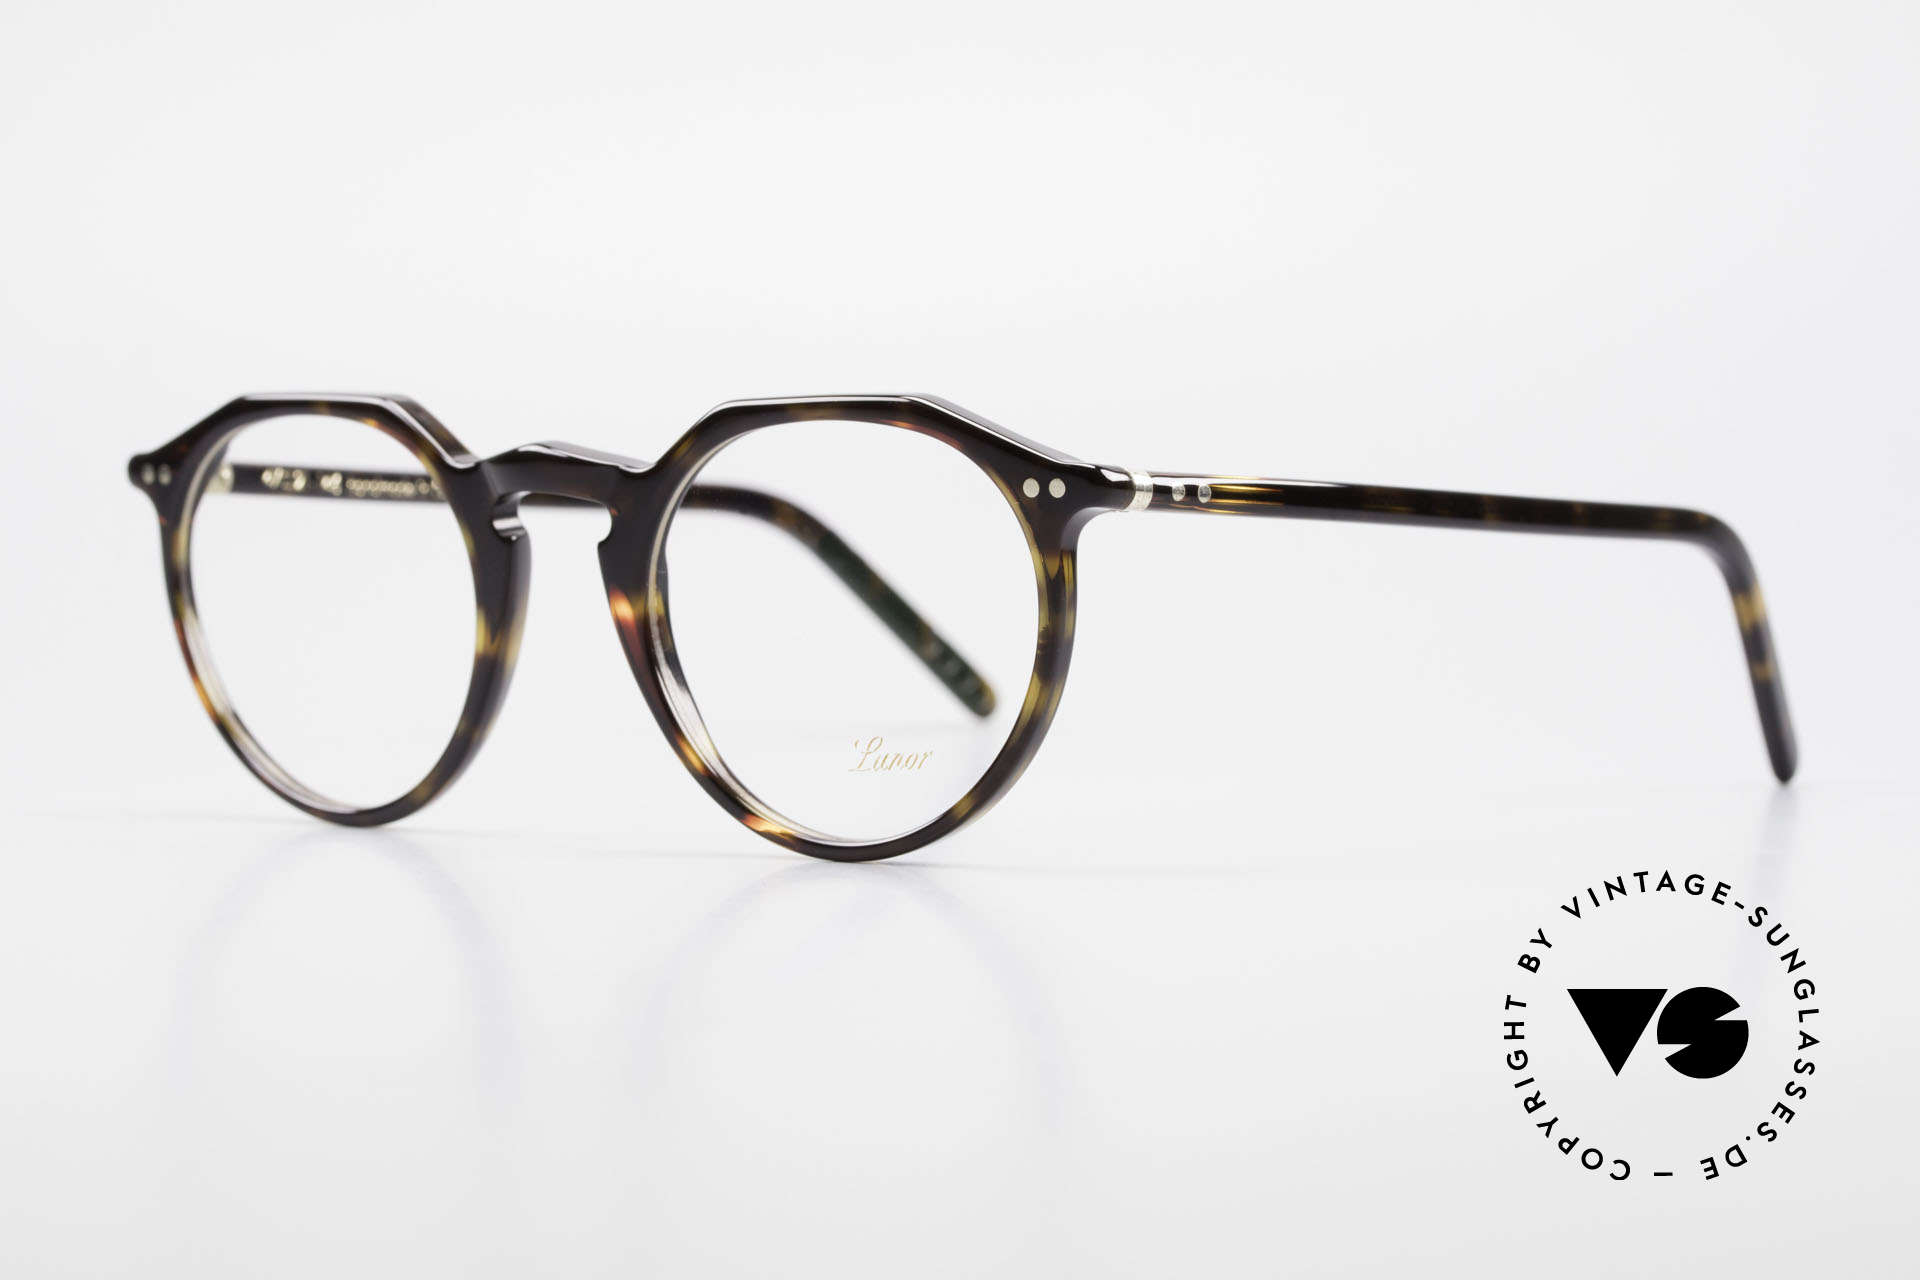 """Lunor A5 237 Classic Timeless Panto Frame, well-known for the """"W-bridge"""" & the plain frame designs, Made for Men and Women"""